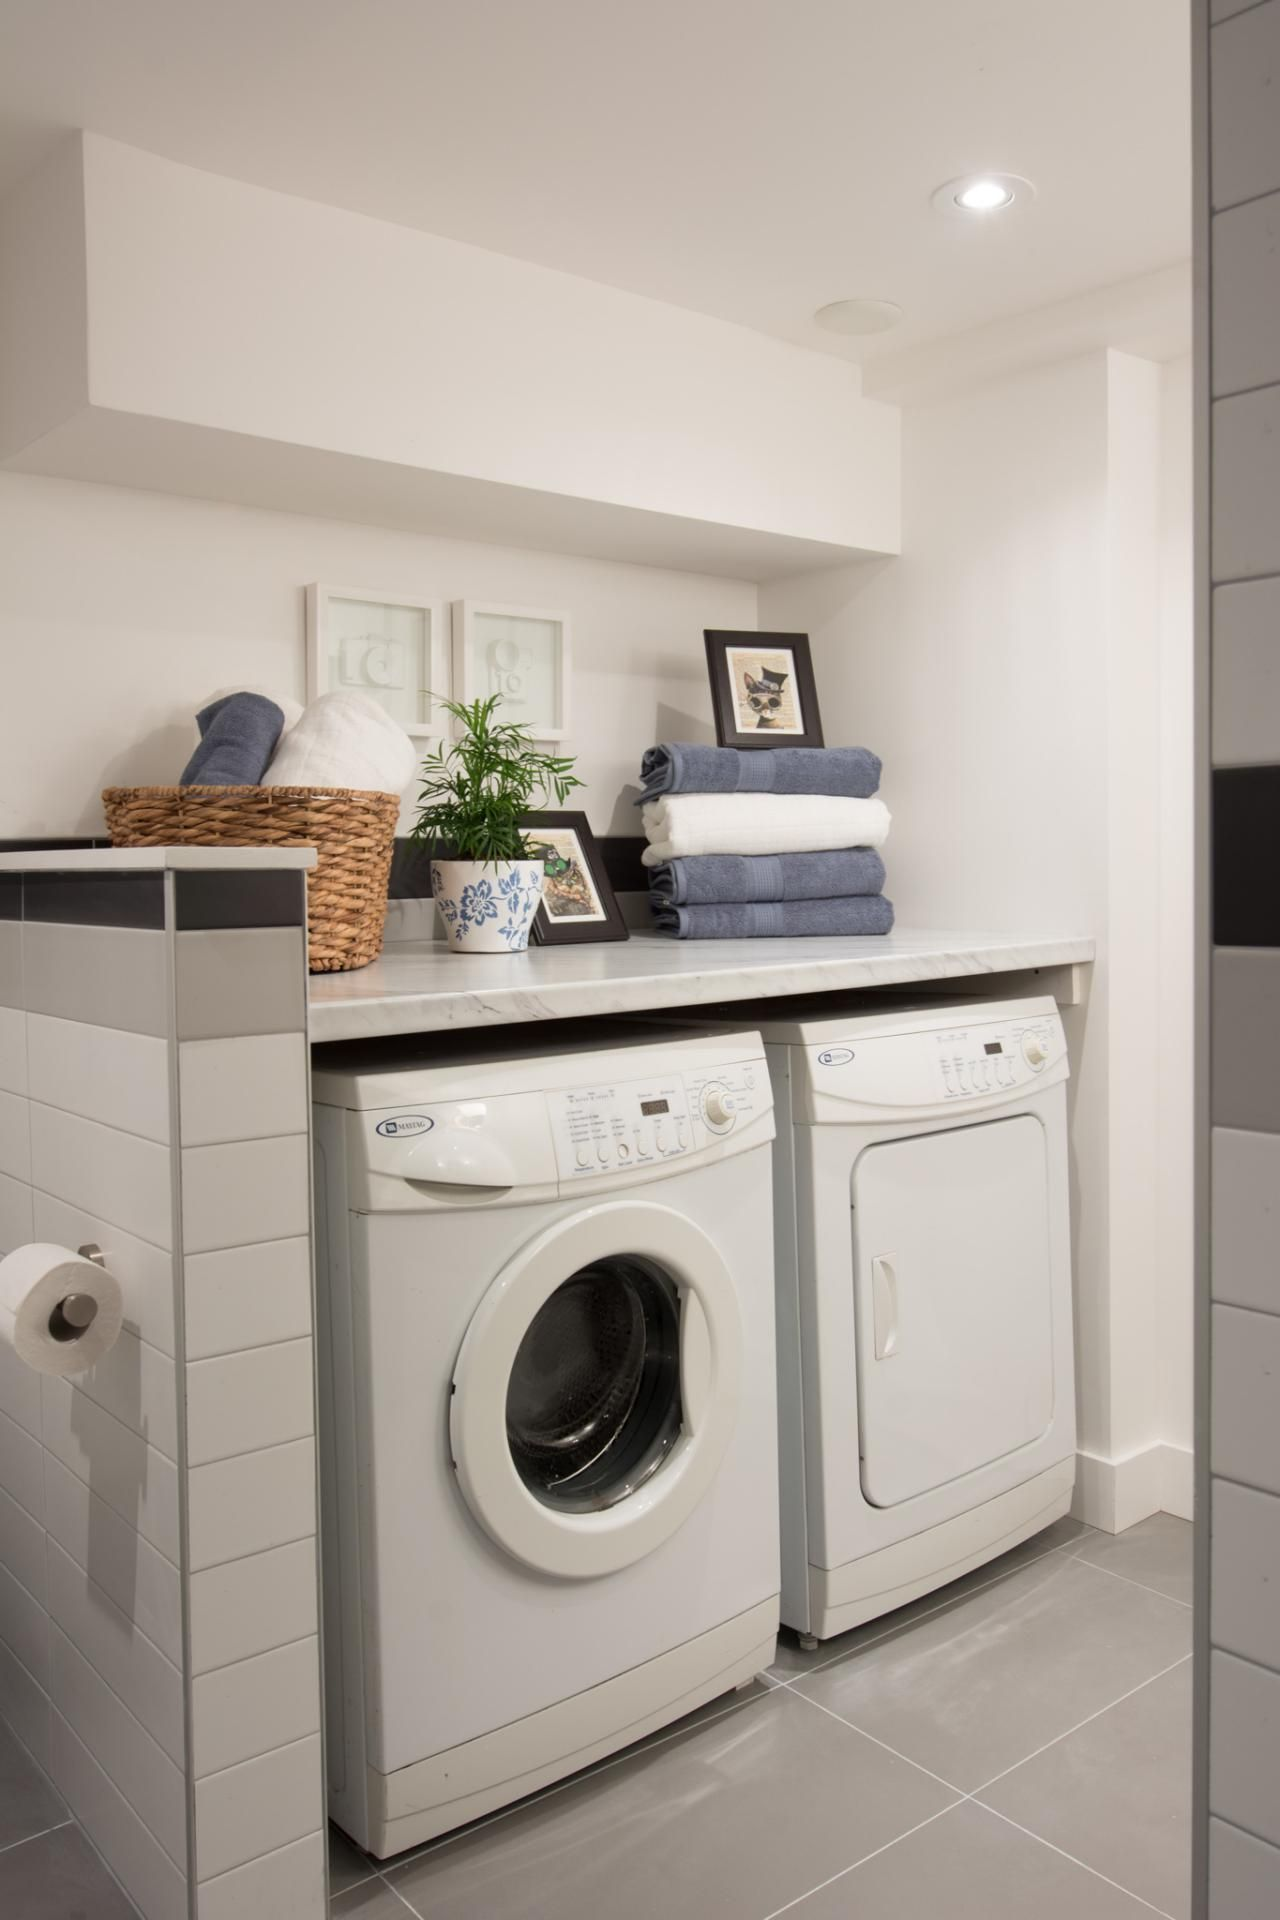 60 Amazingly Inspiring Small Laundry Room Design Ideas Laundry Rooms Laundry And Interiors